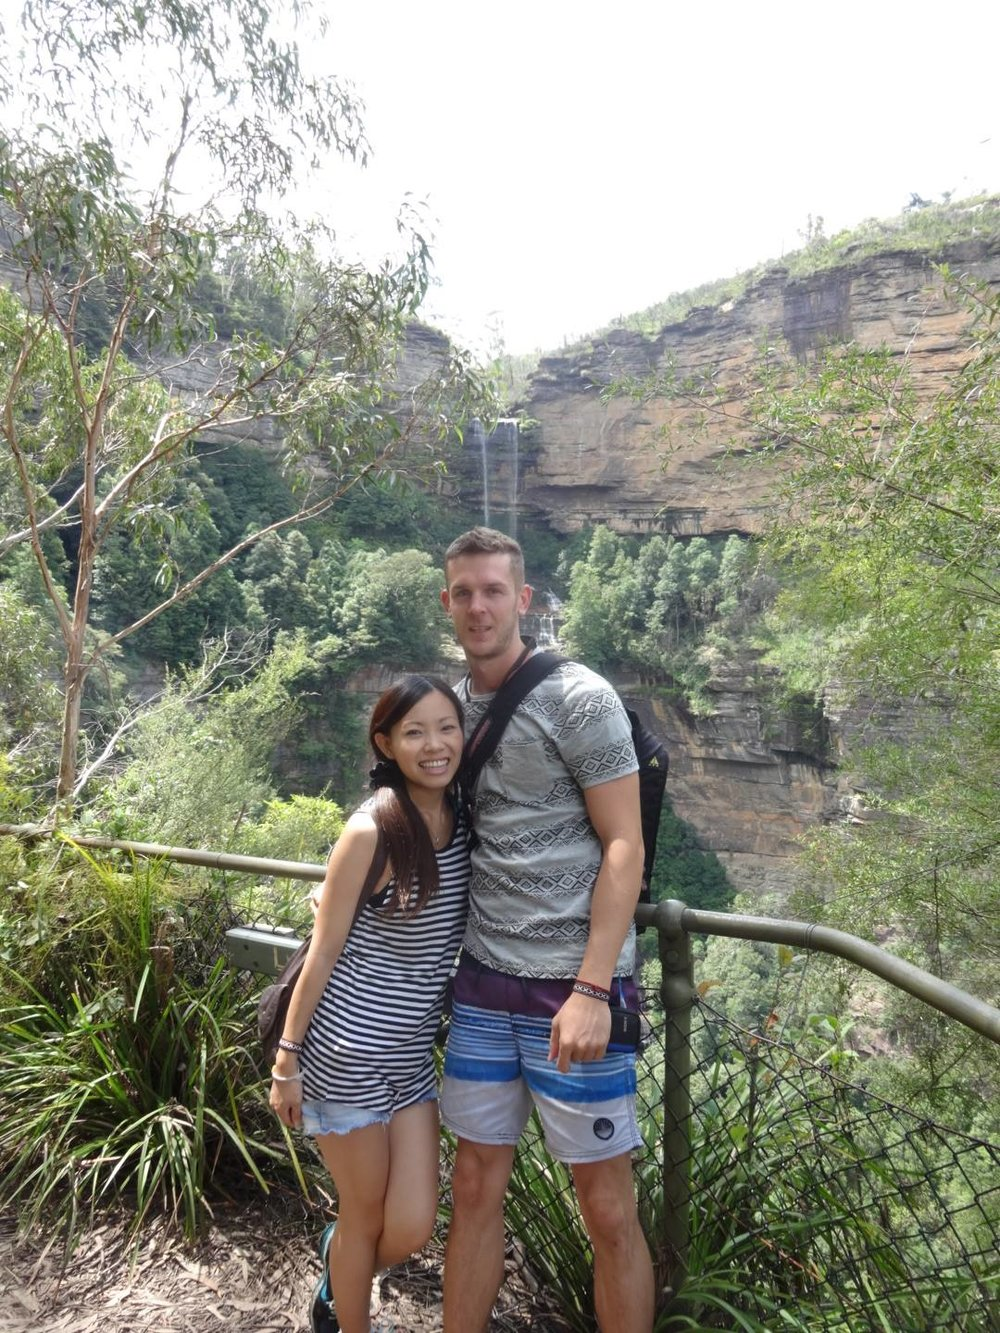 Travelling - I love to travel whenever I get the opportunity. I enjoy meeting new people and experiencing other cultures.This photo is from the Blue Mountains in Australia. Before moving to Japan, I spent a year travelling around Asia and then two years in Australia, which is where I met my amazing wife, Akane.